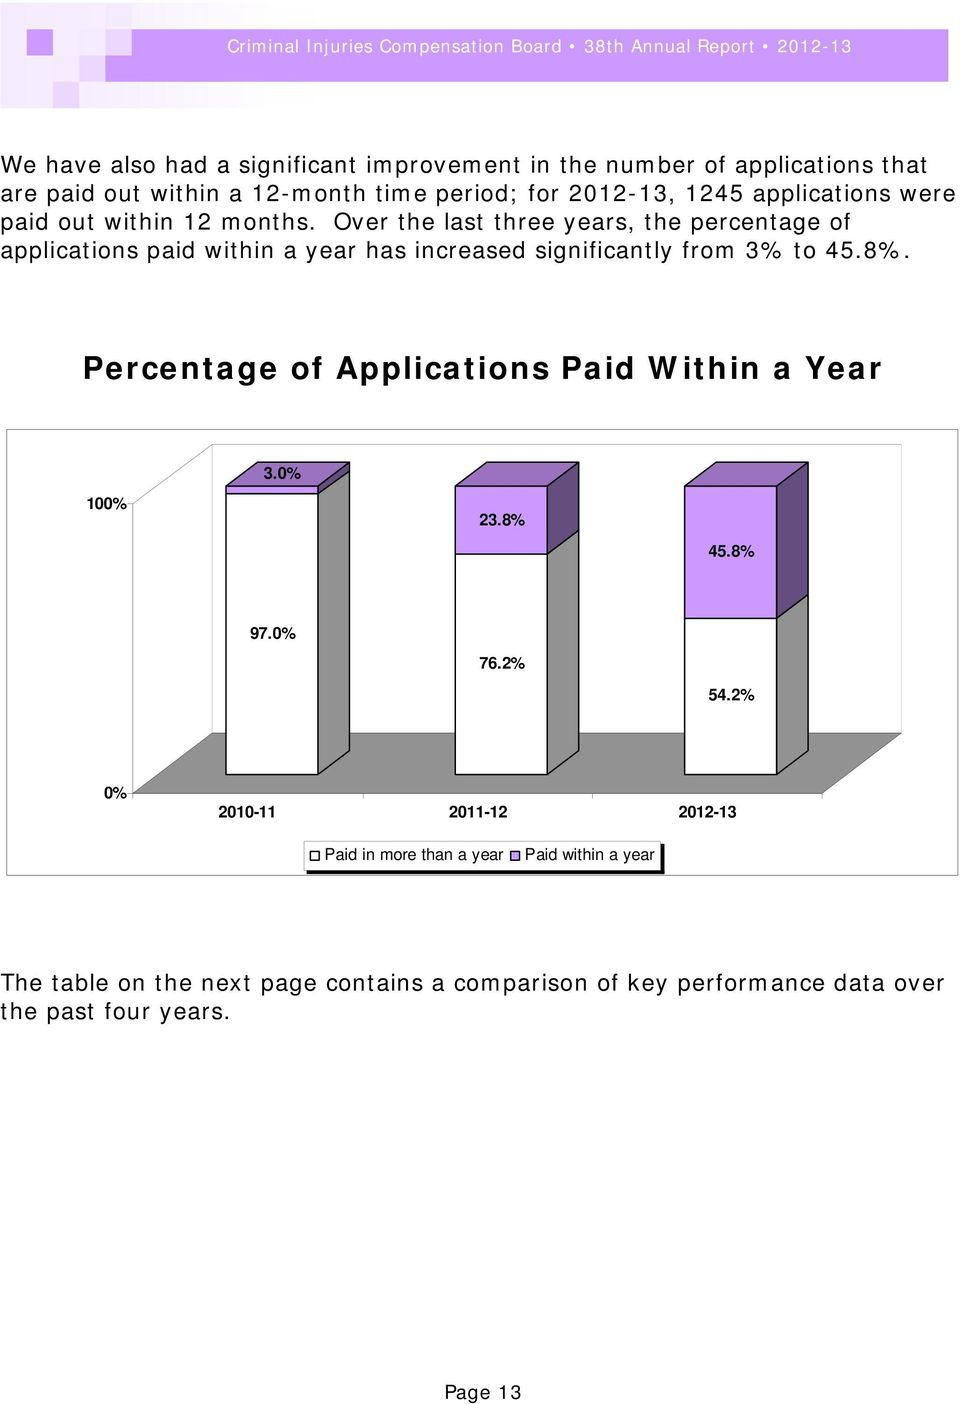 Over the last three years, the percentage of applications paid within a year has increased significantly from 3% to 45.8%.